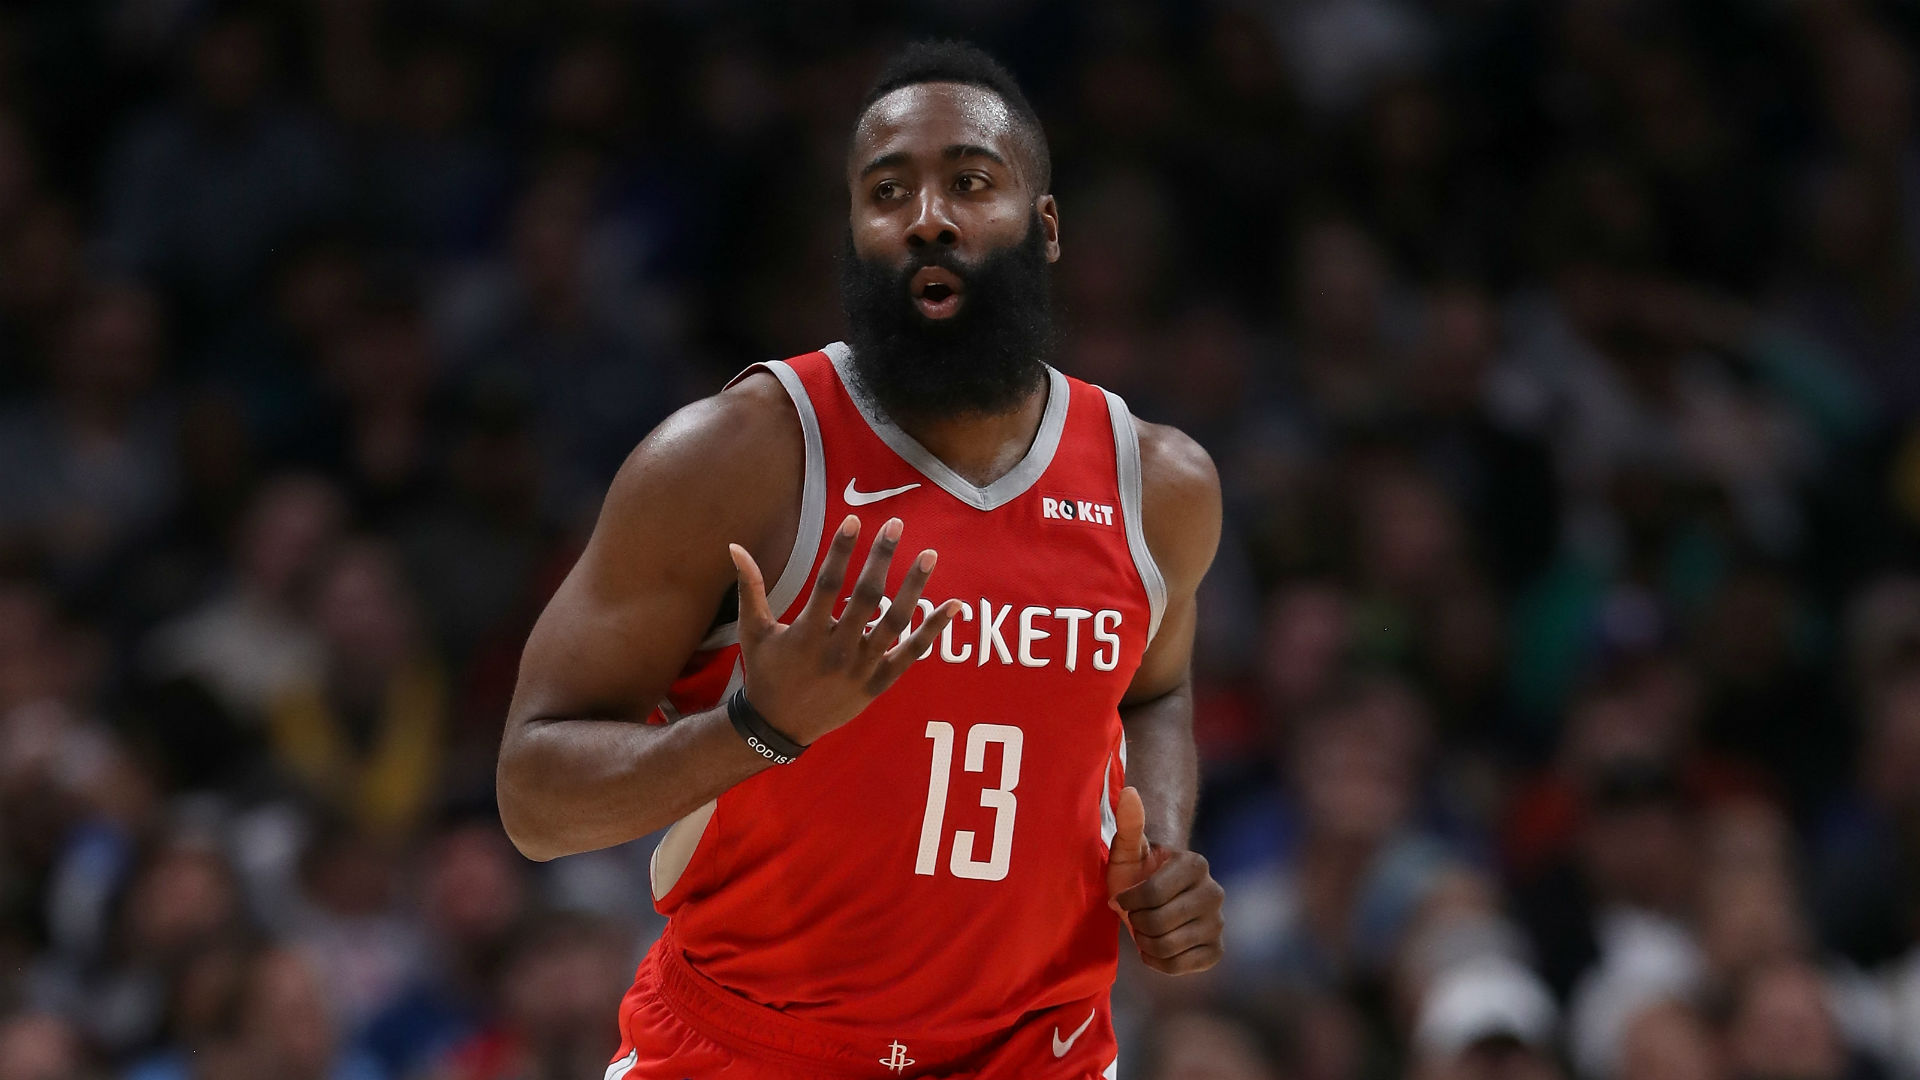 Rockets can't rely on 'superhuman' James Harden, Mike D'Antoni warns